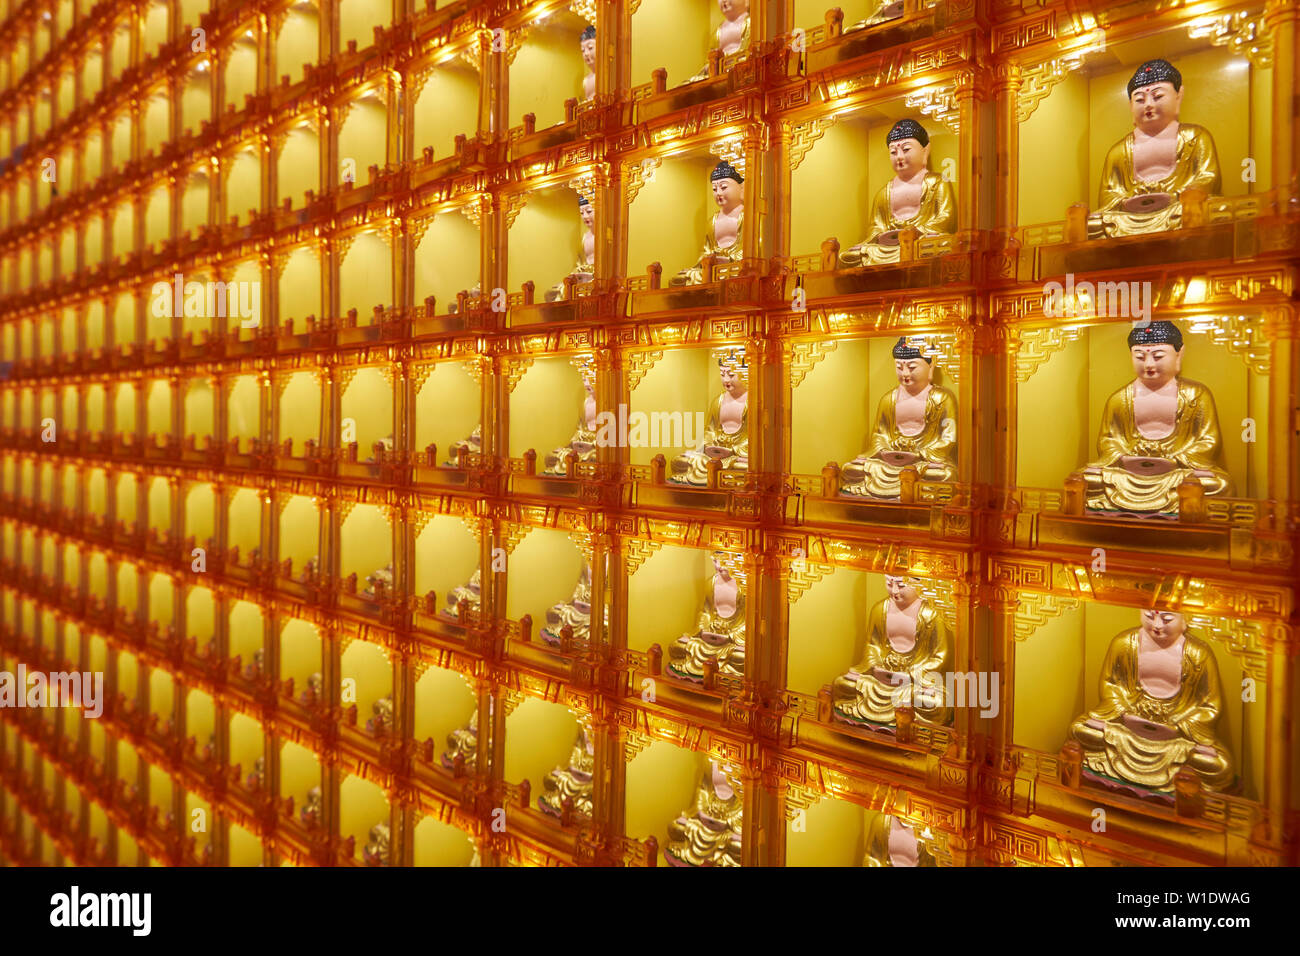 A wall of golden Buddhas in their own boxes inside the Memorial Shrine building at the Che Sui Khor Chinese temple in Kota Kinabalu, Borneo, Malaysia. - Stock Image